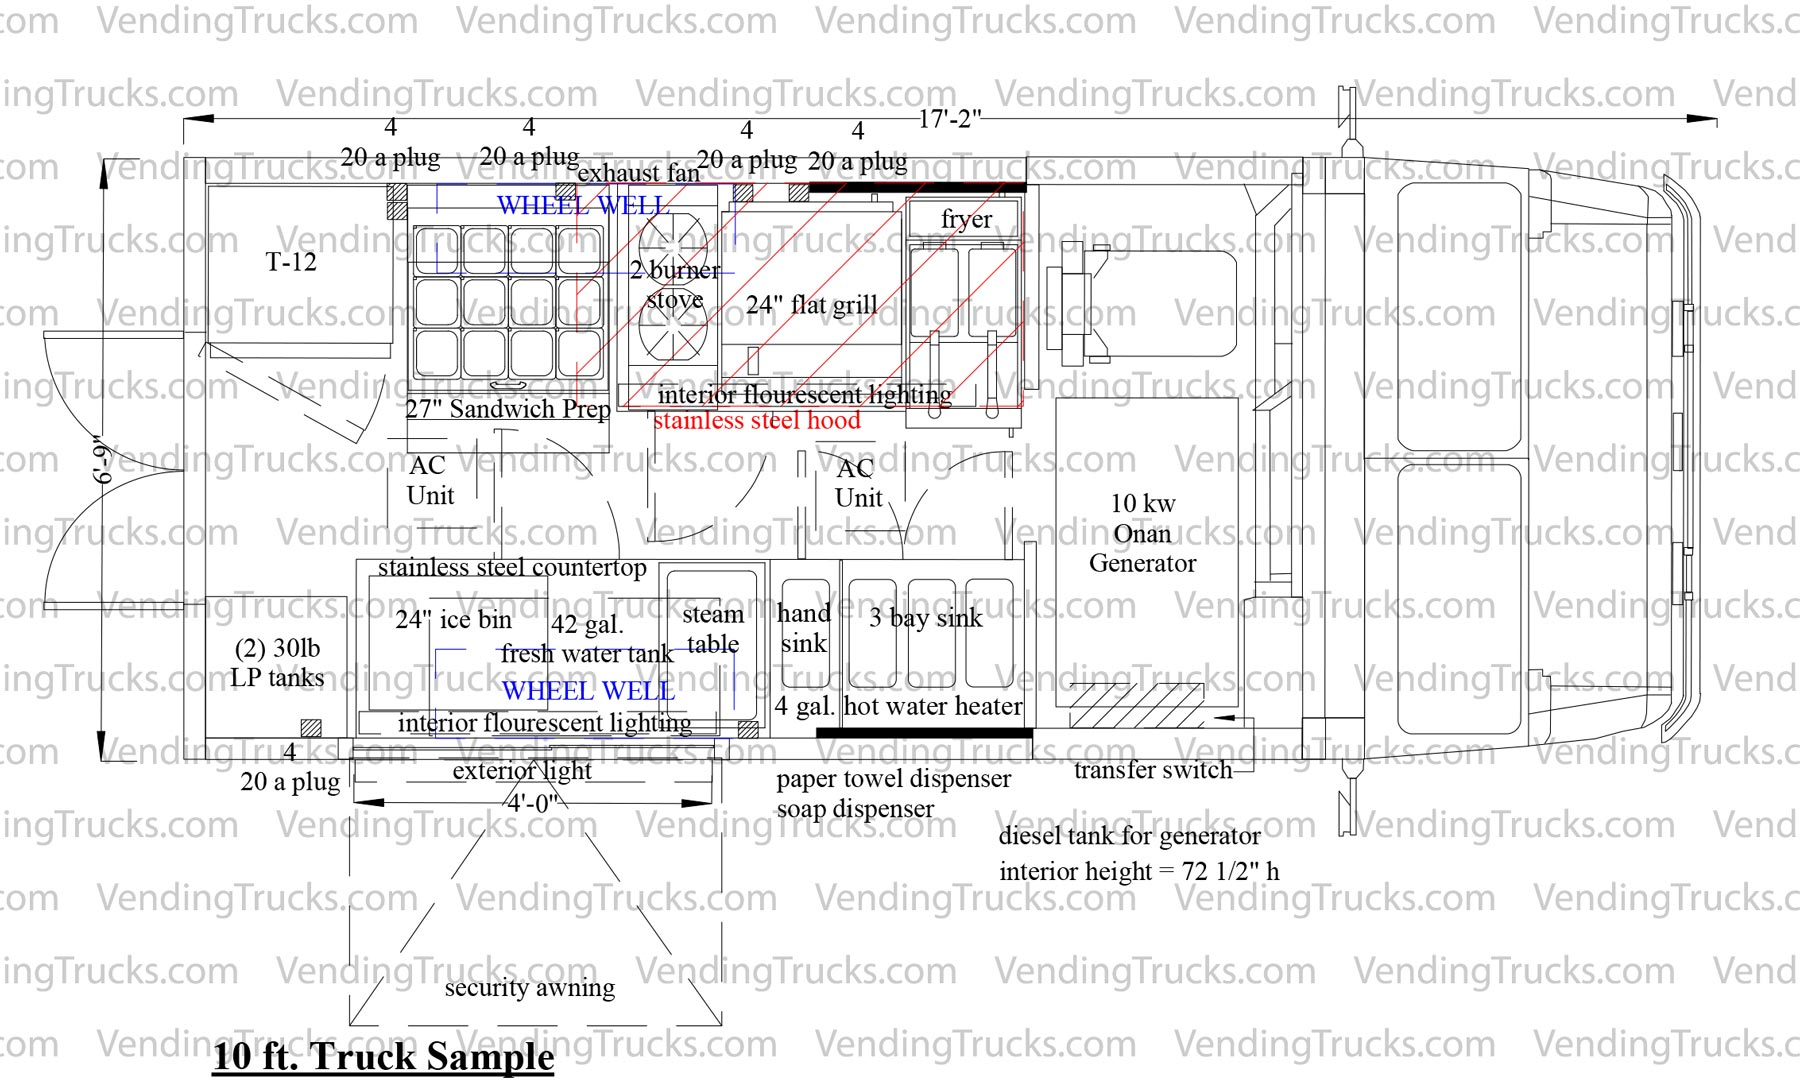 hight resolution of 10 foot sample food truck layout